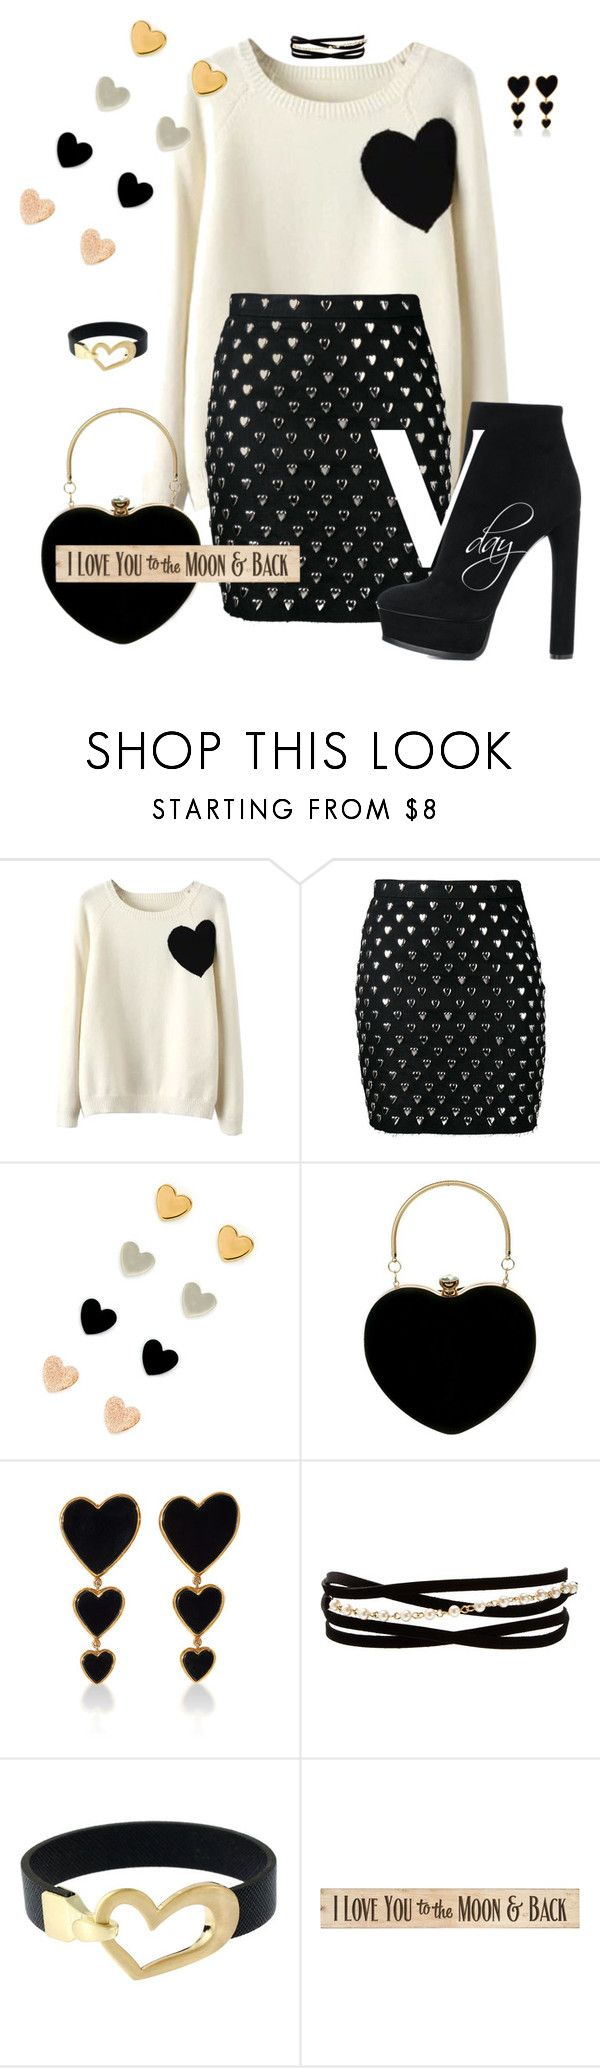 """""""vday"""" by traceyenorton ❤ liked on Polyvore featuring WithChic, Yves Saint Laurent, Edie Parker, Kenneth Jay Lane, DutchCrafters and Casadei"""